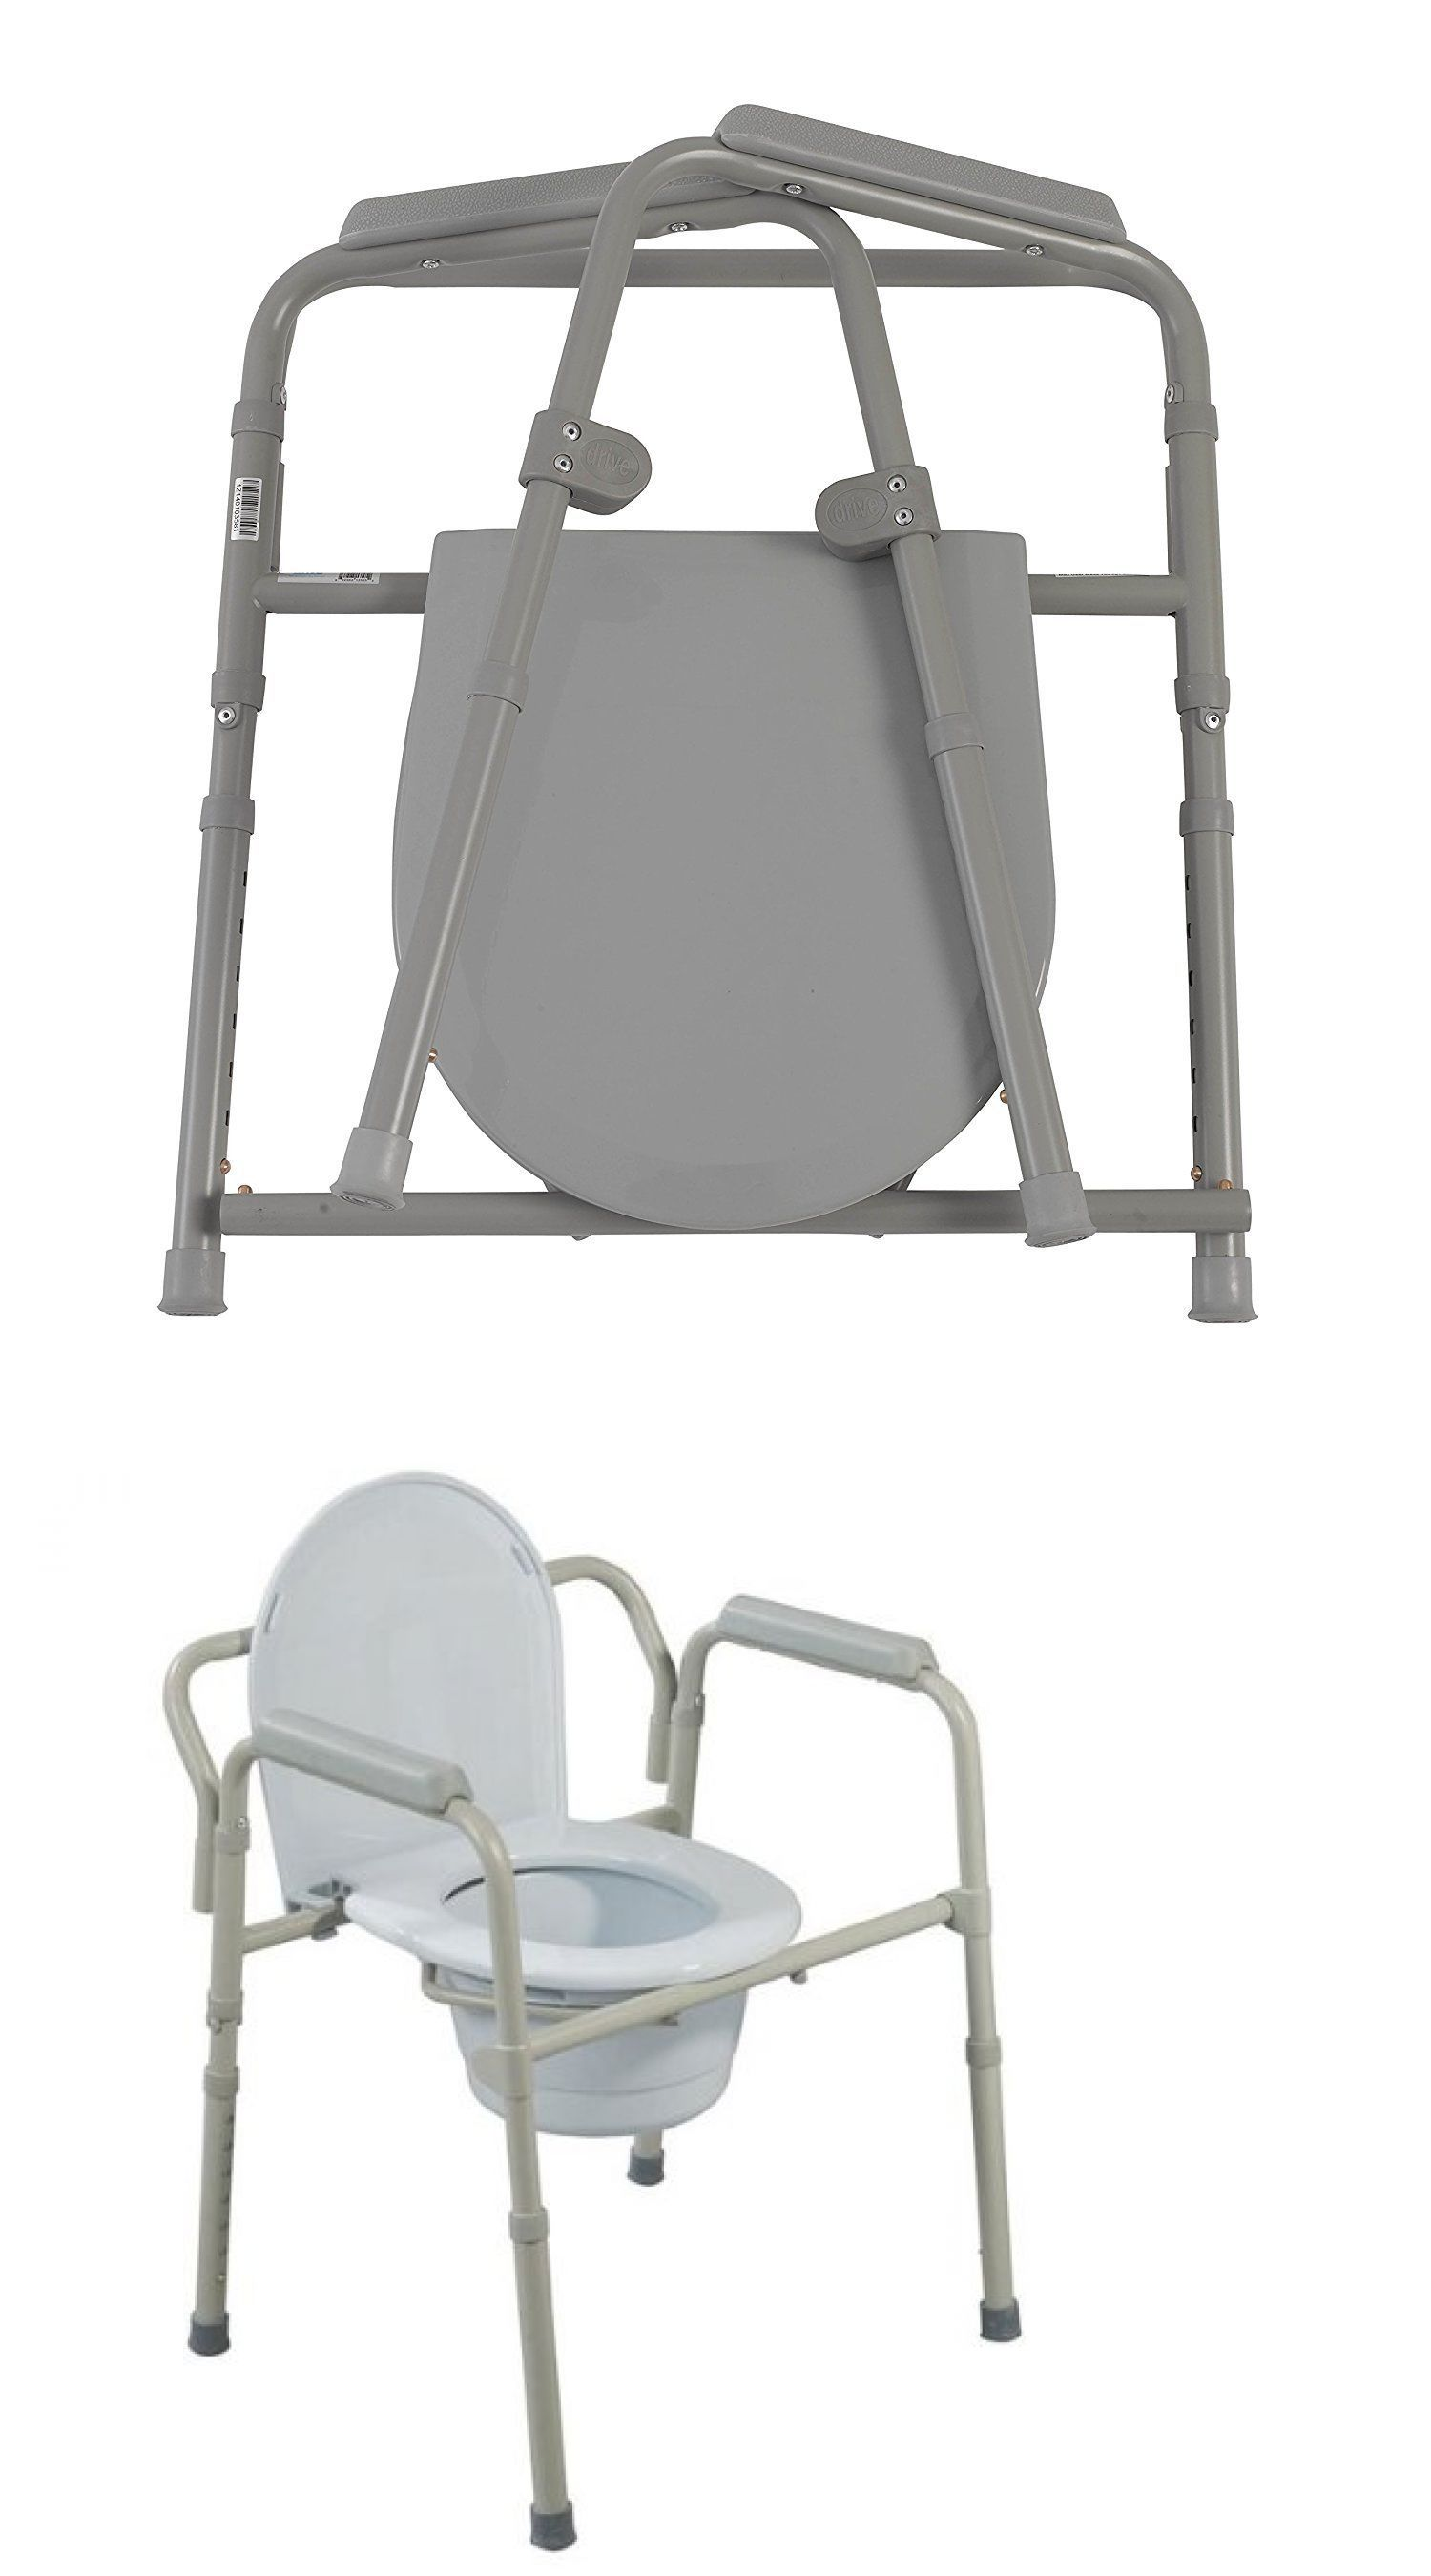 Toilet Frames and modes Steel Folding Adjustable Bedside